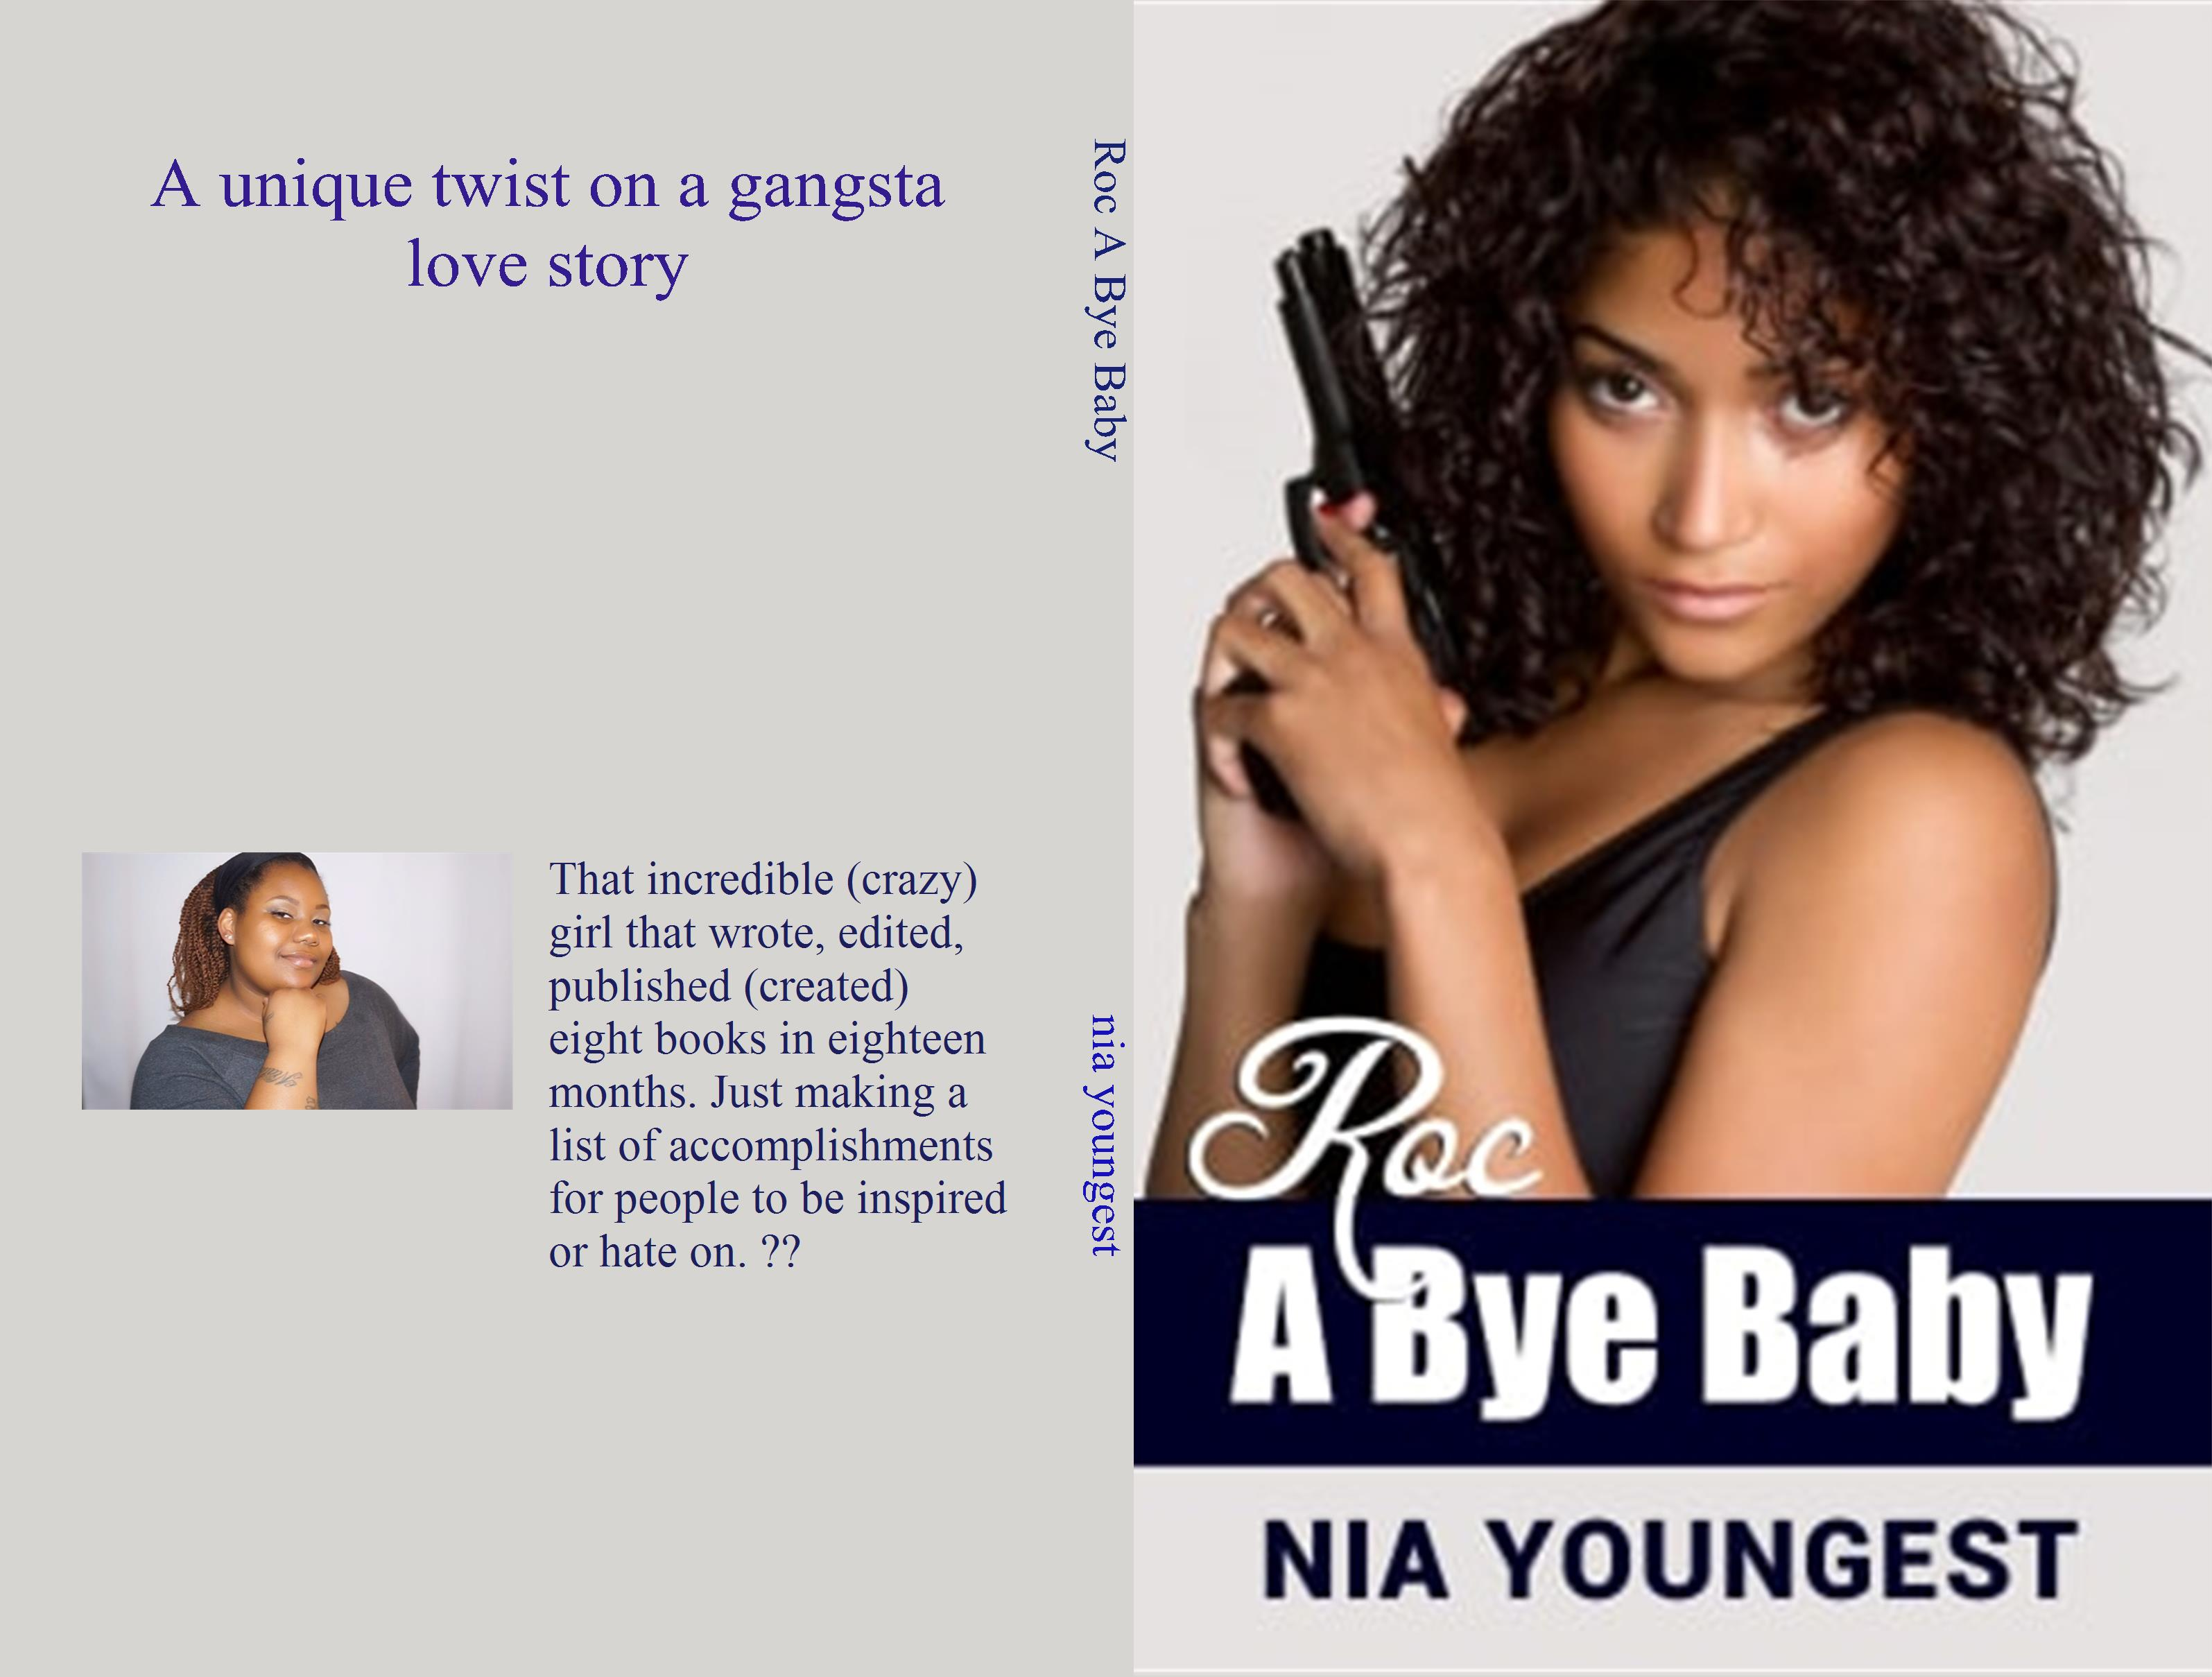 Roc A Bye Baby cover image